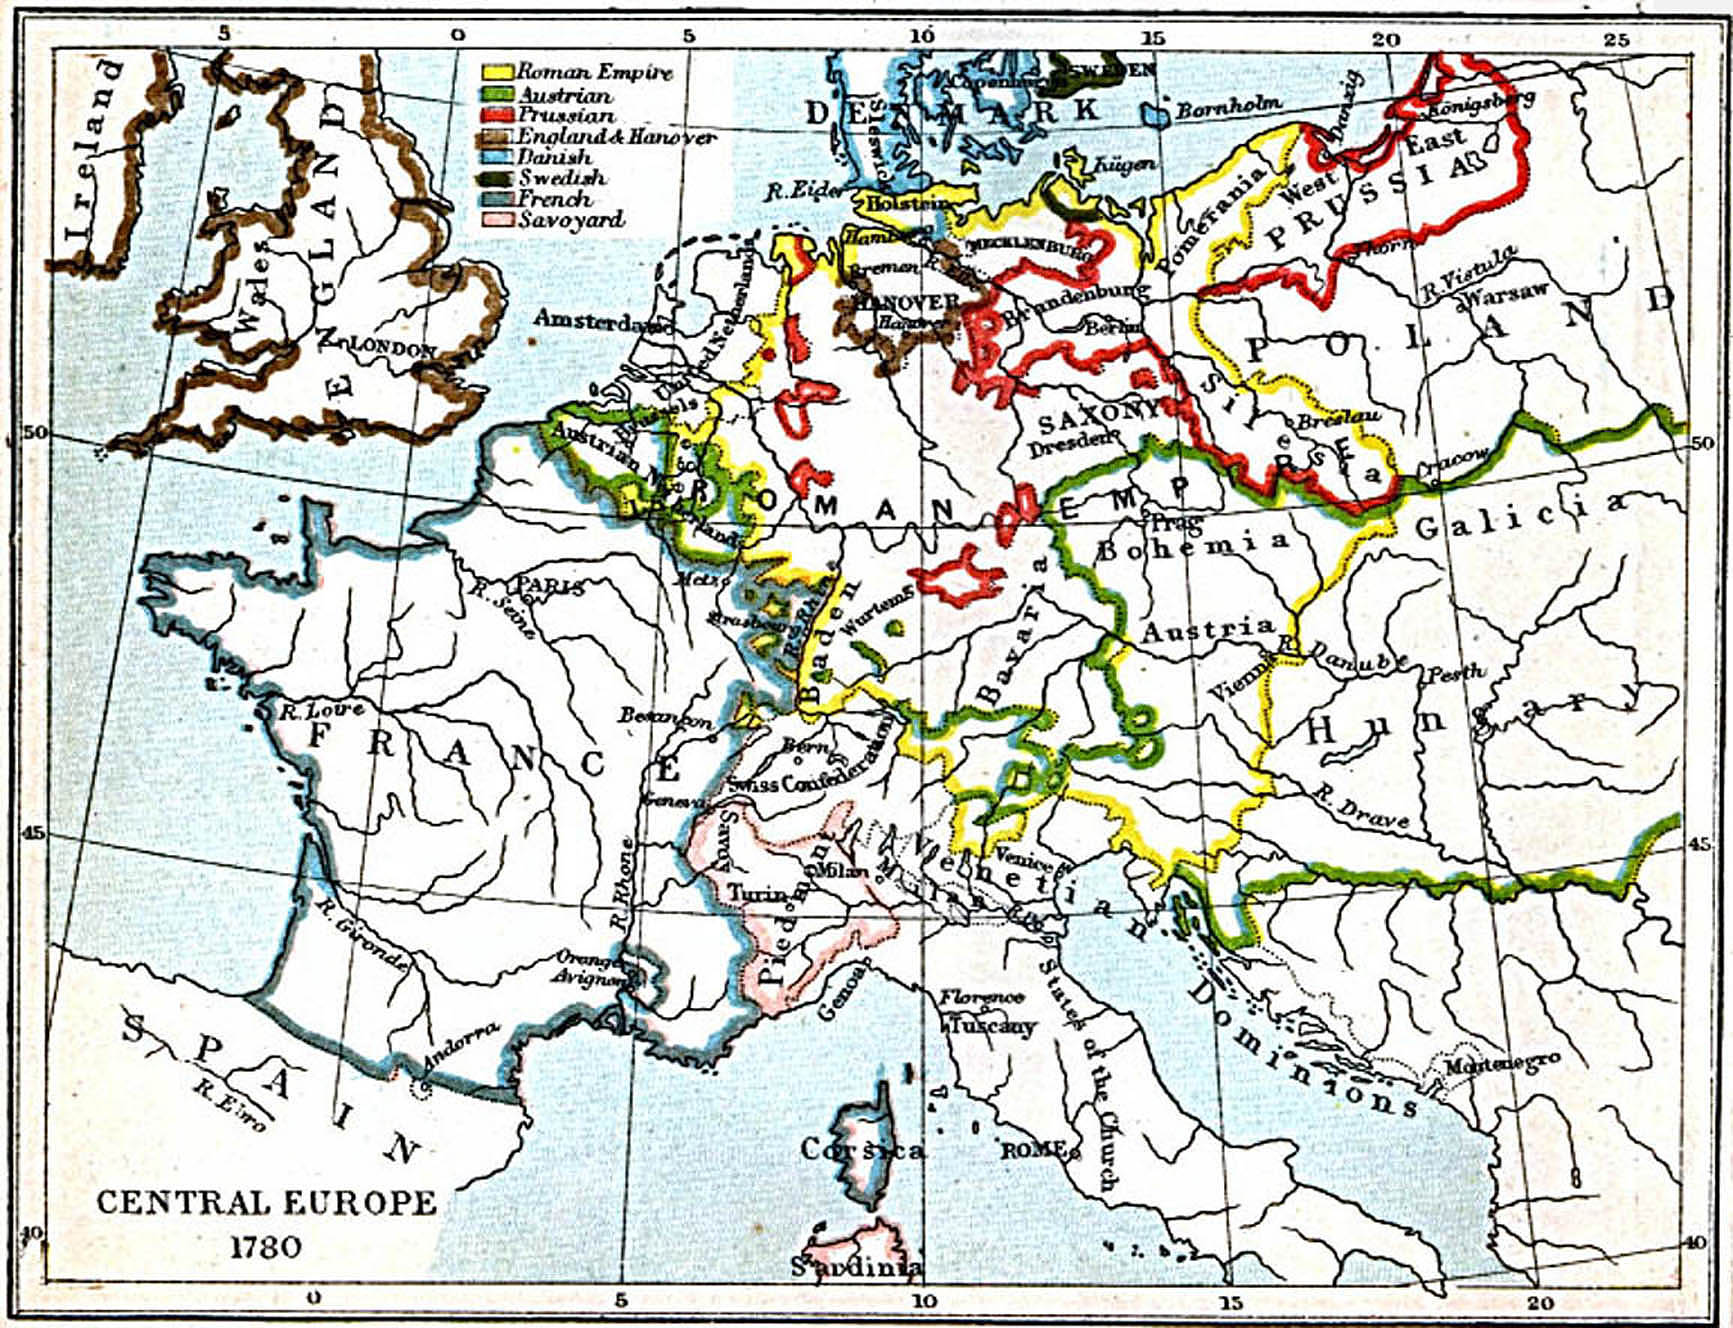 Central Europe Map 1780 A.D.